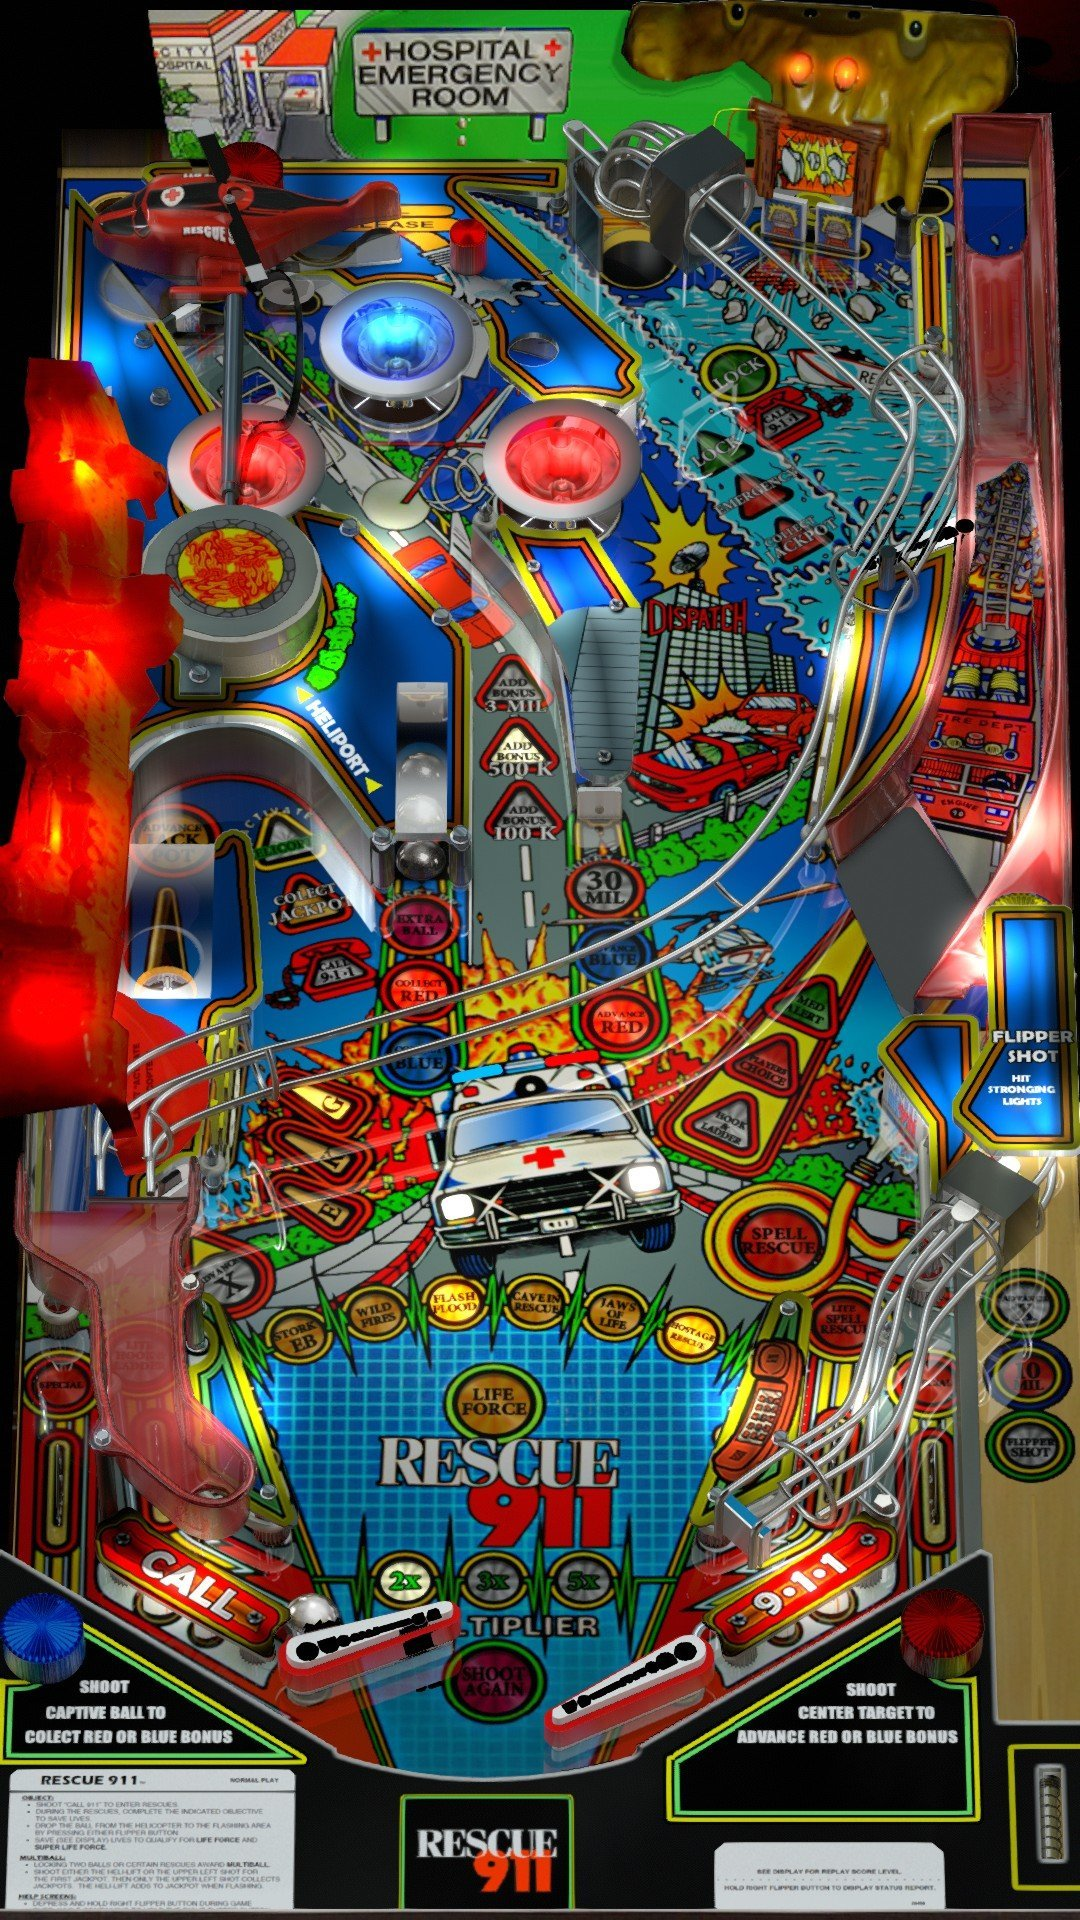 [SUPPORT] Rescue 911 1582462336-recue-911-playfield-1